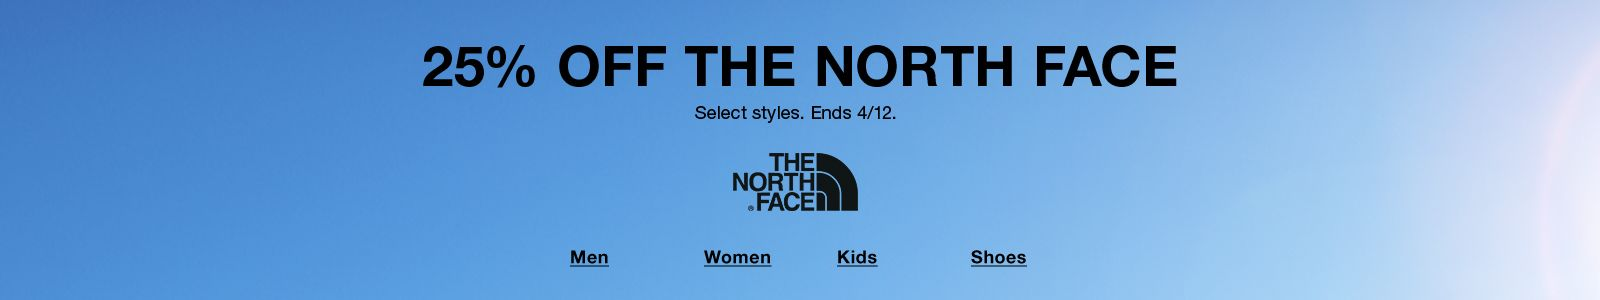 25% Off The North Face, Select styles, Ends 4/12, Men, Women, Kids, Shoes